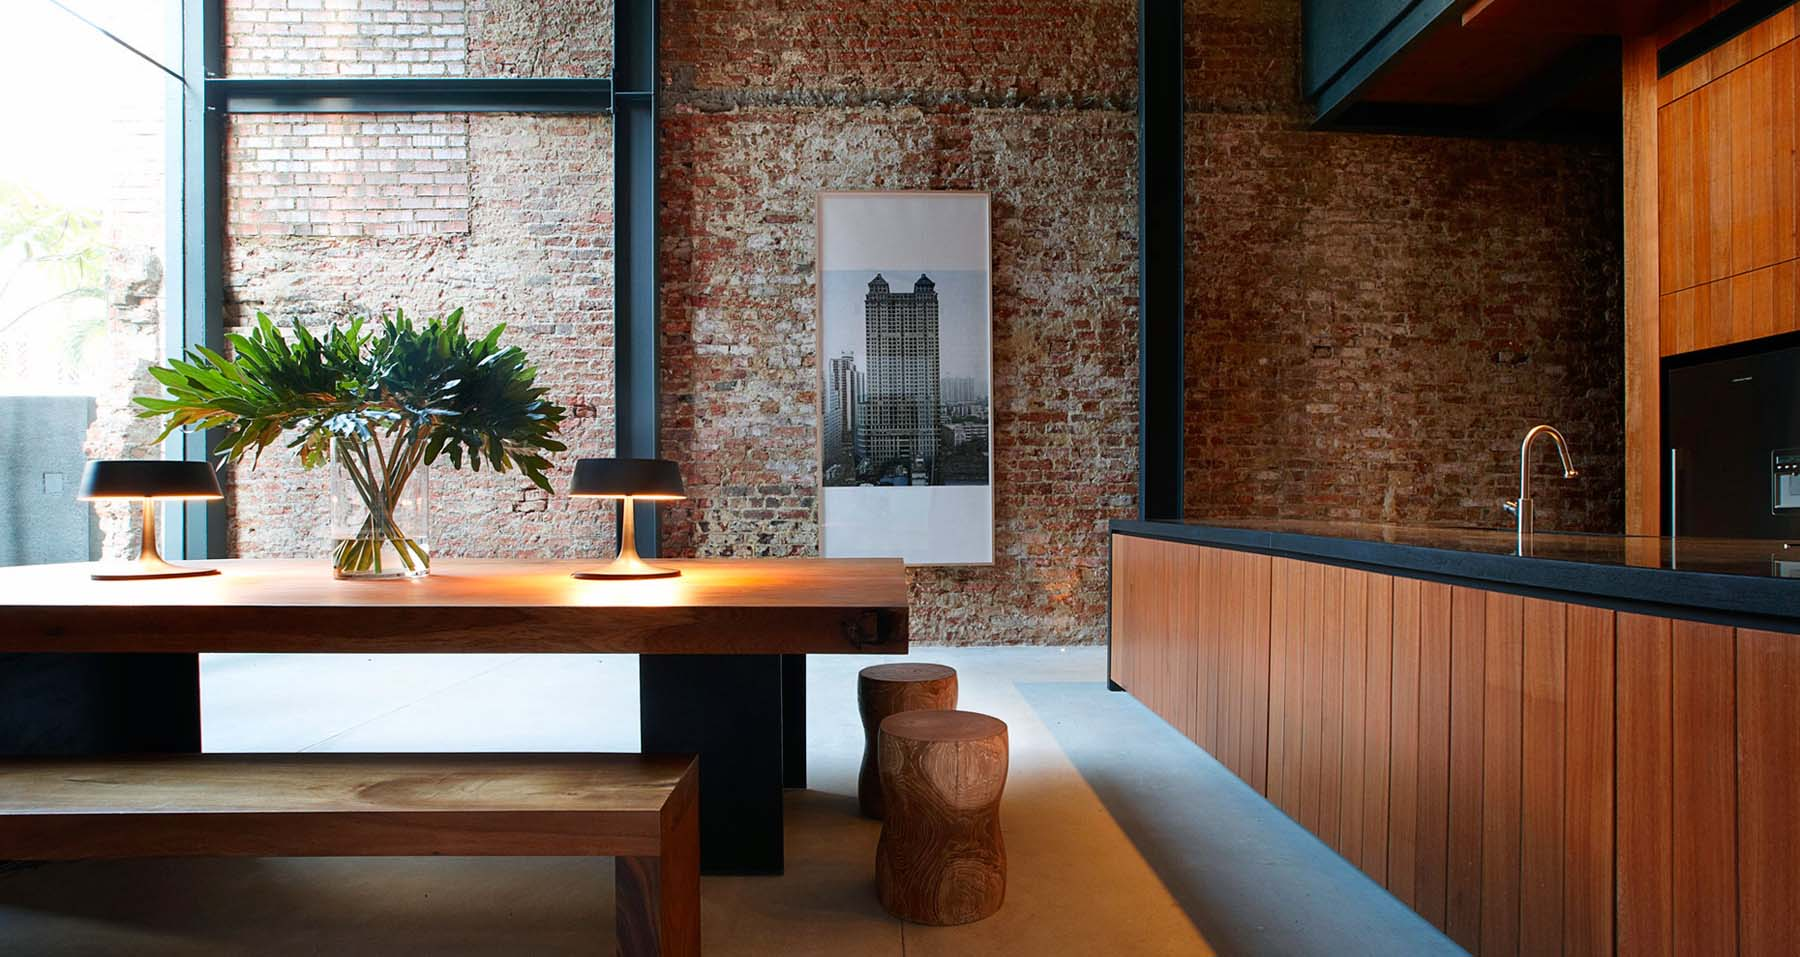 Modern apartment with a red brick feature wall, exposed black steel, wood cabinetry and furniture with concrete floors.